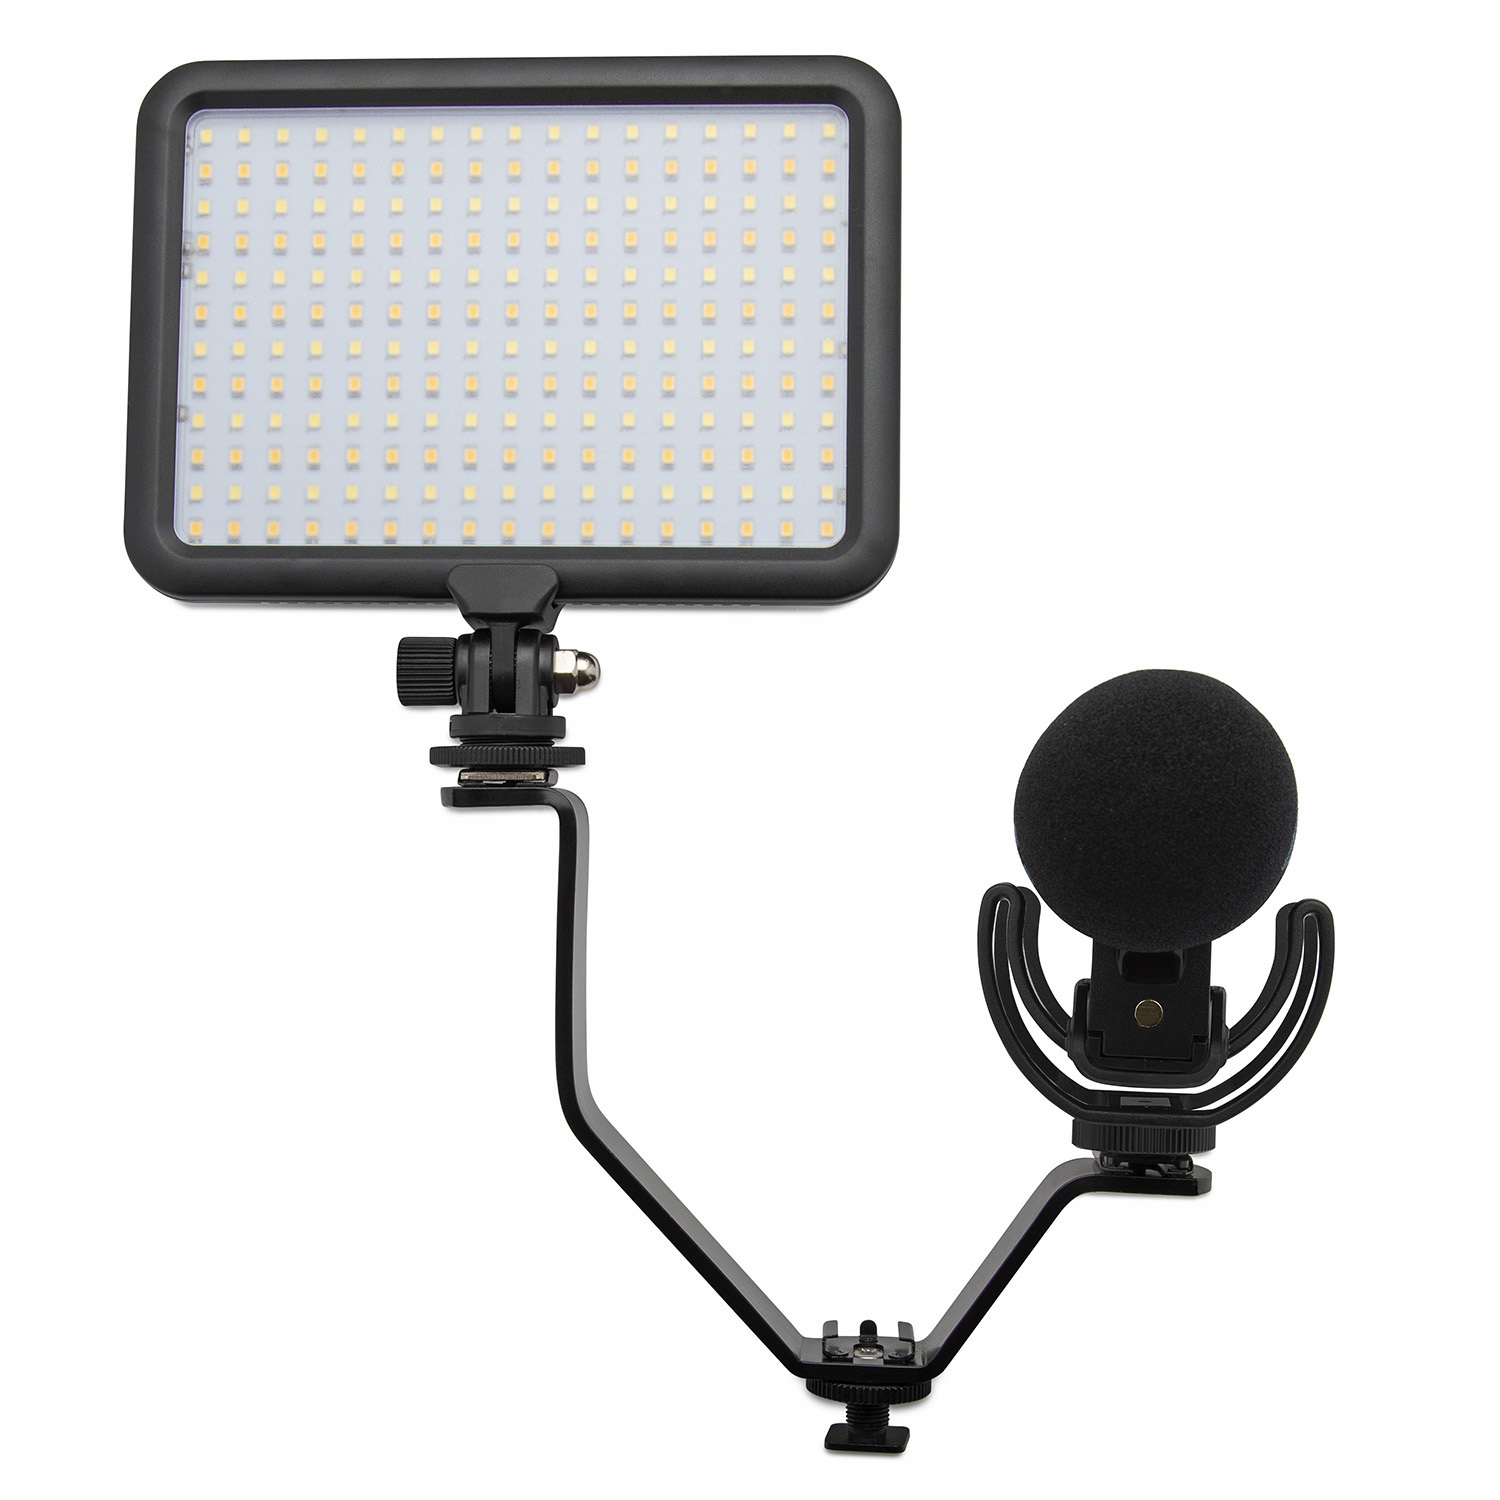 Rode Pro On-Camera Microphone with Video Light and Knox Gear Flashlight Bracket